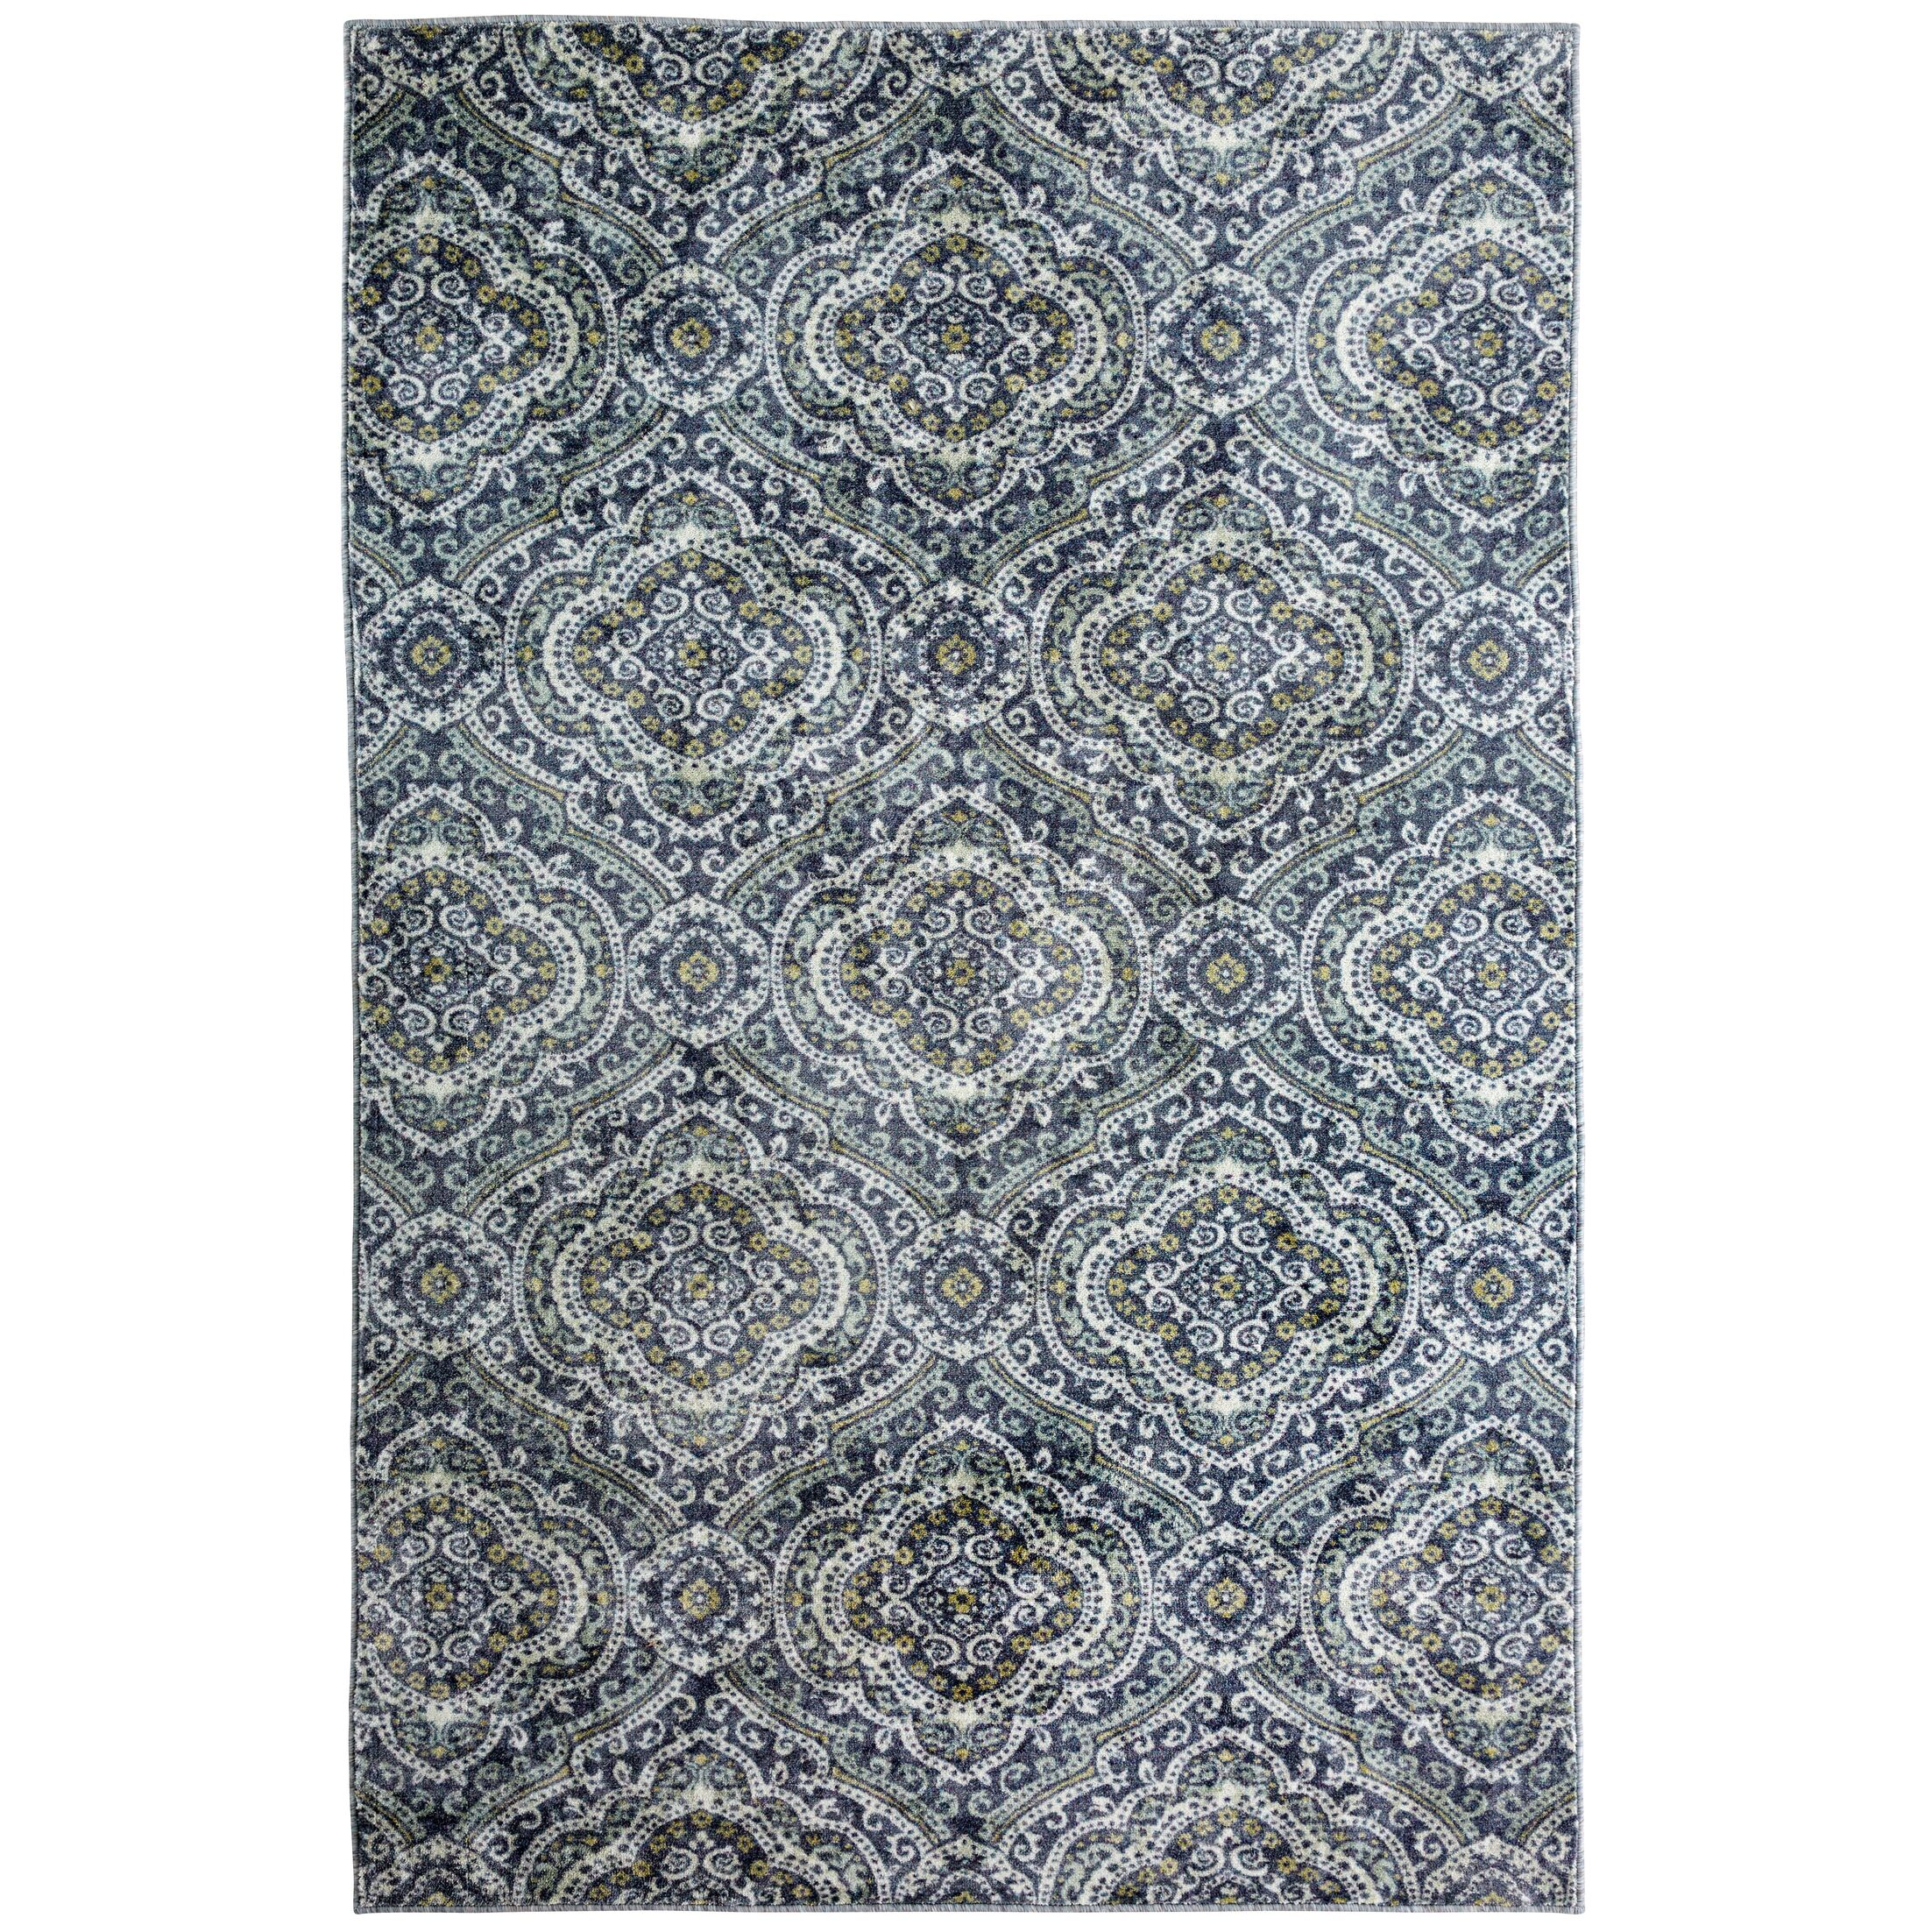 Amblewood Gray Area Rug Rug Size: Rectangle 5' x 8'